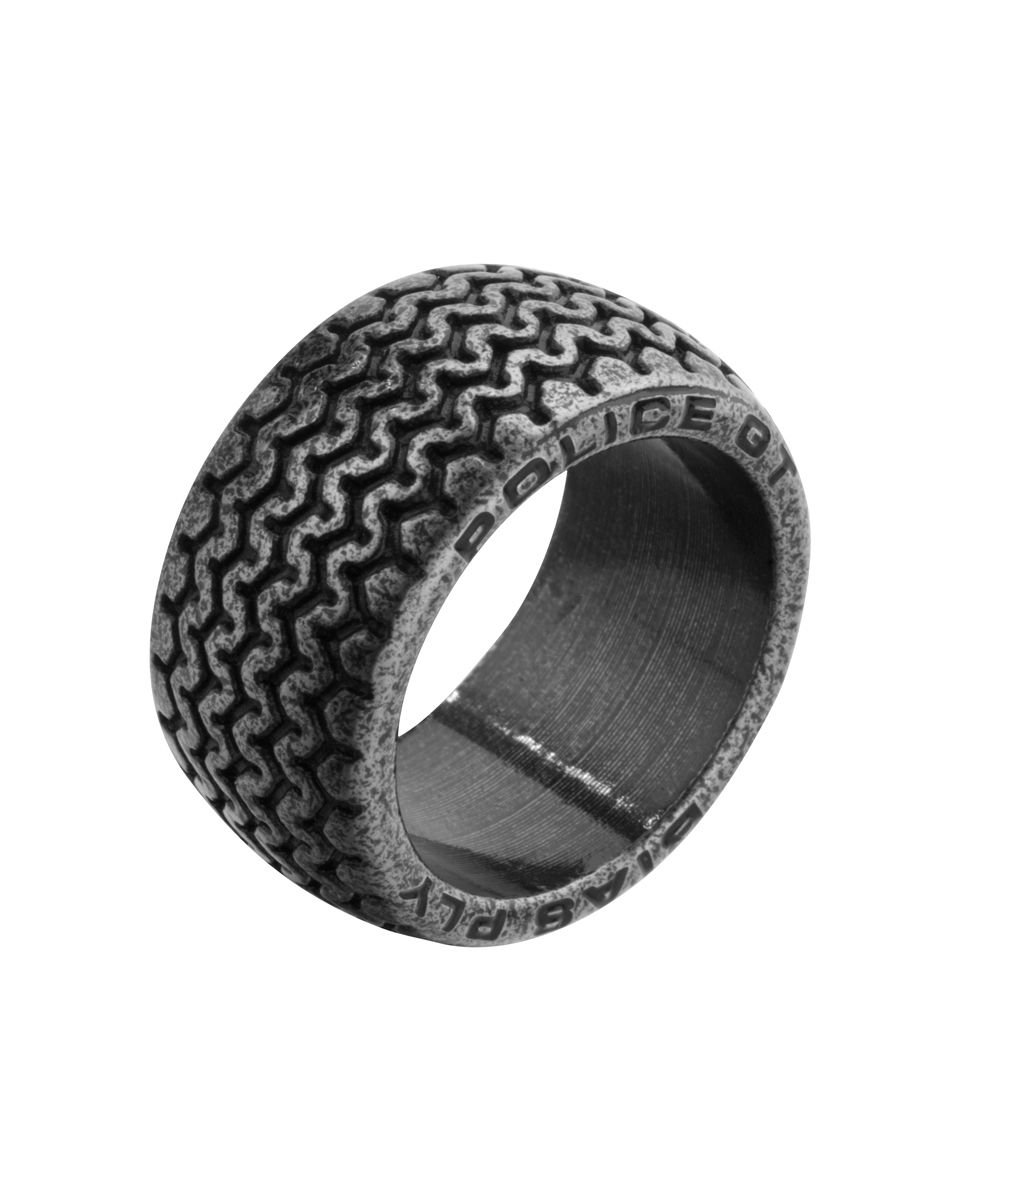 Police ''Burnout'' Tire Pattern and Engrave Logo Stainless Steel Ring, Size 10.5 by Police